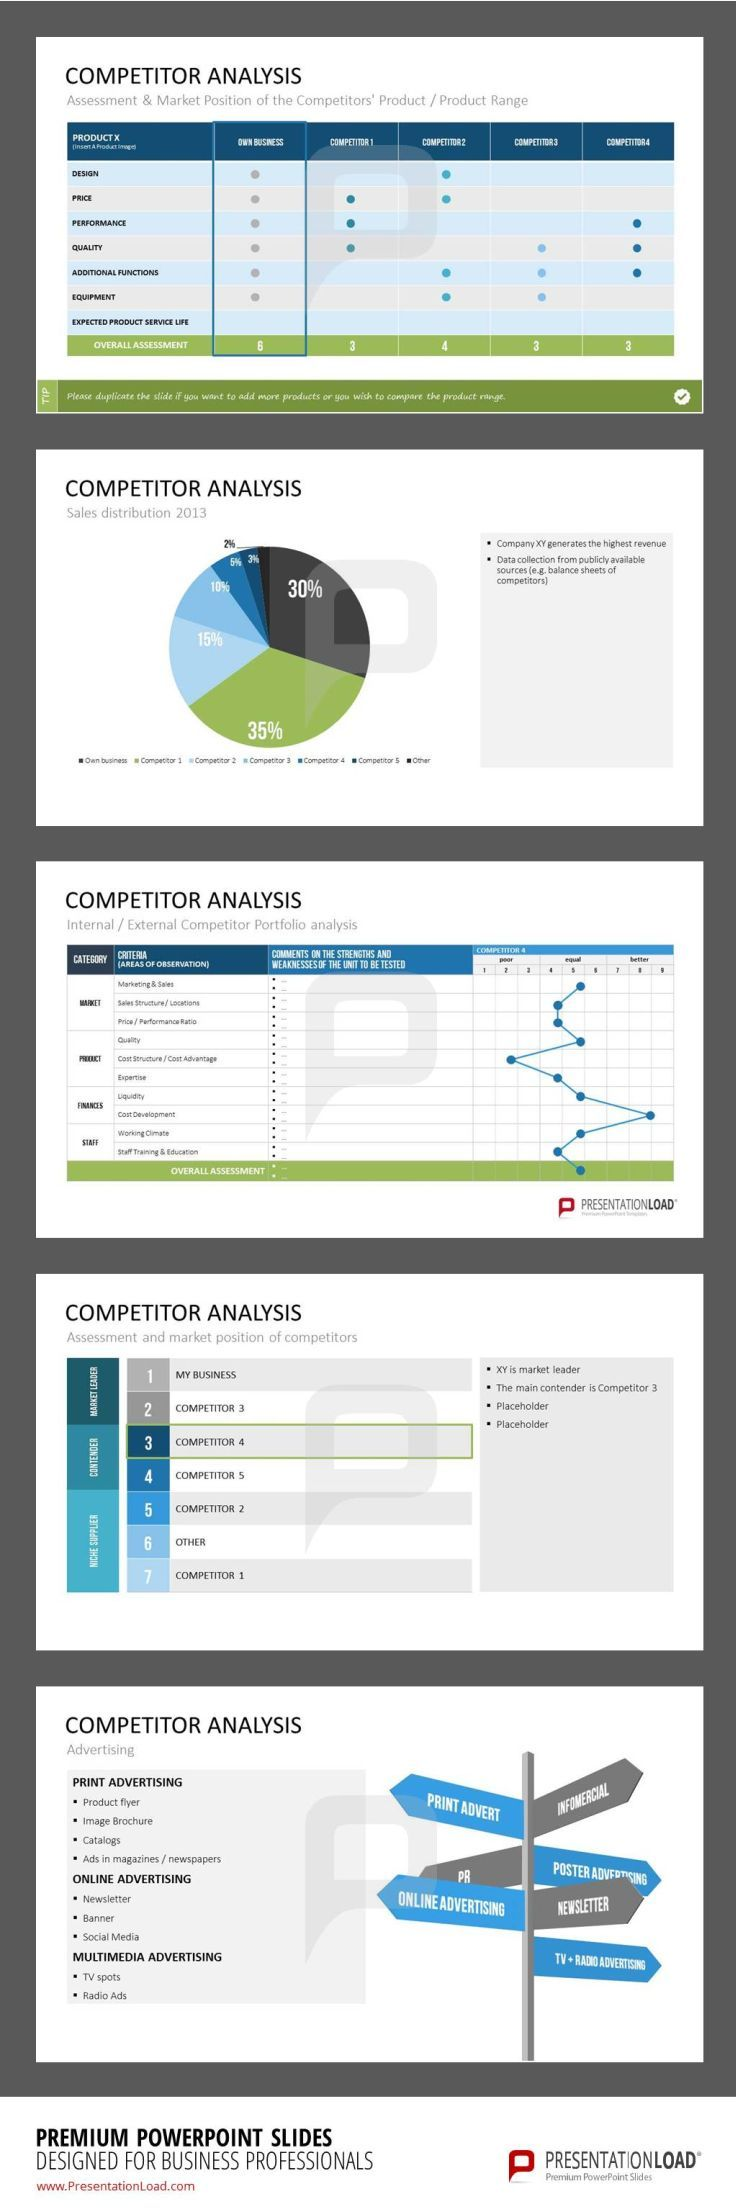 Competitor Analysis Template Excel  Competitive Analysis Template